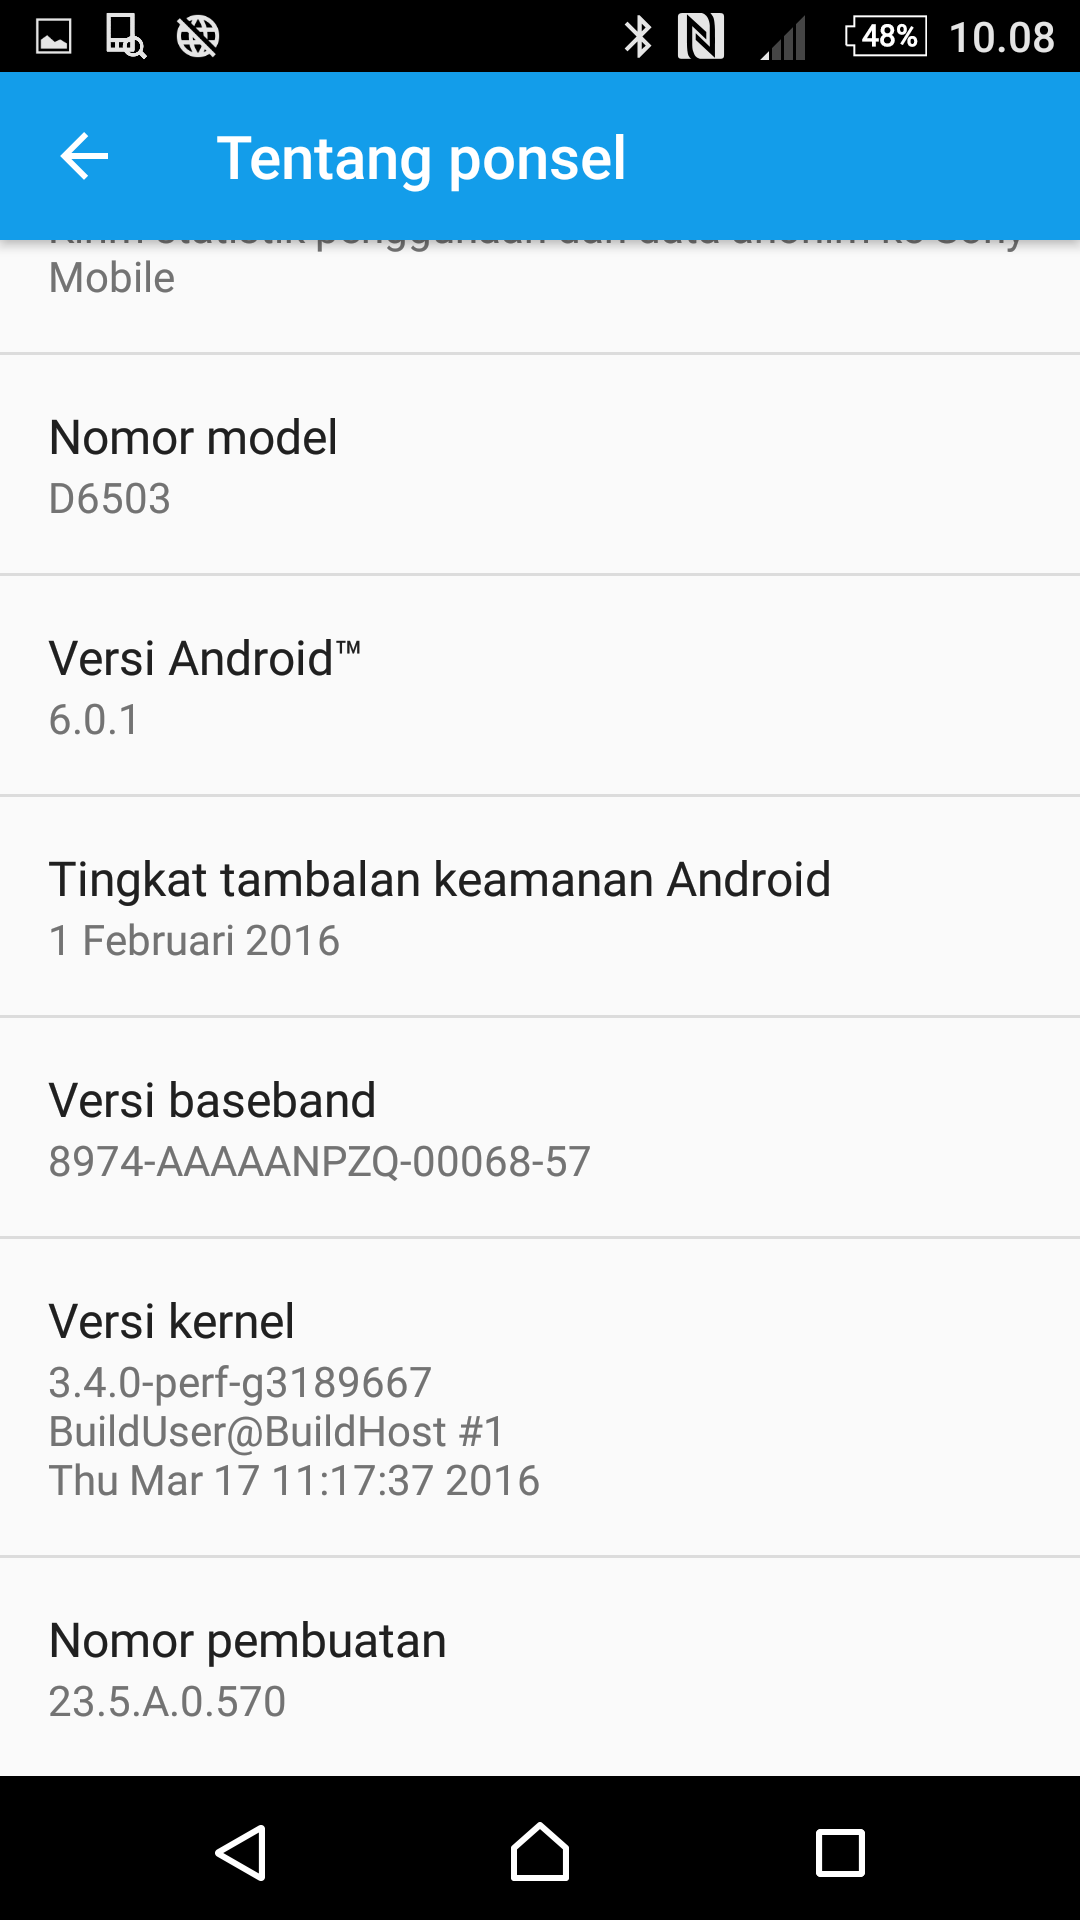 Xperia Z2 Android 6.0.1 Marshmallow 23.5.A.0.570